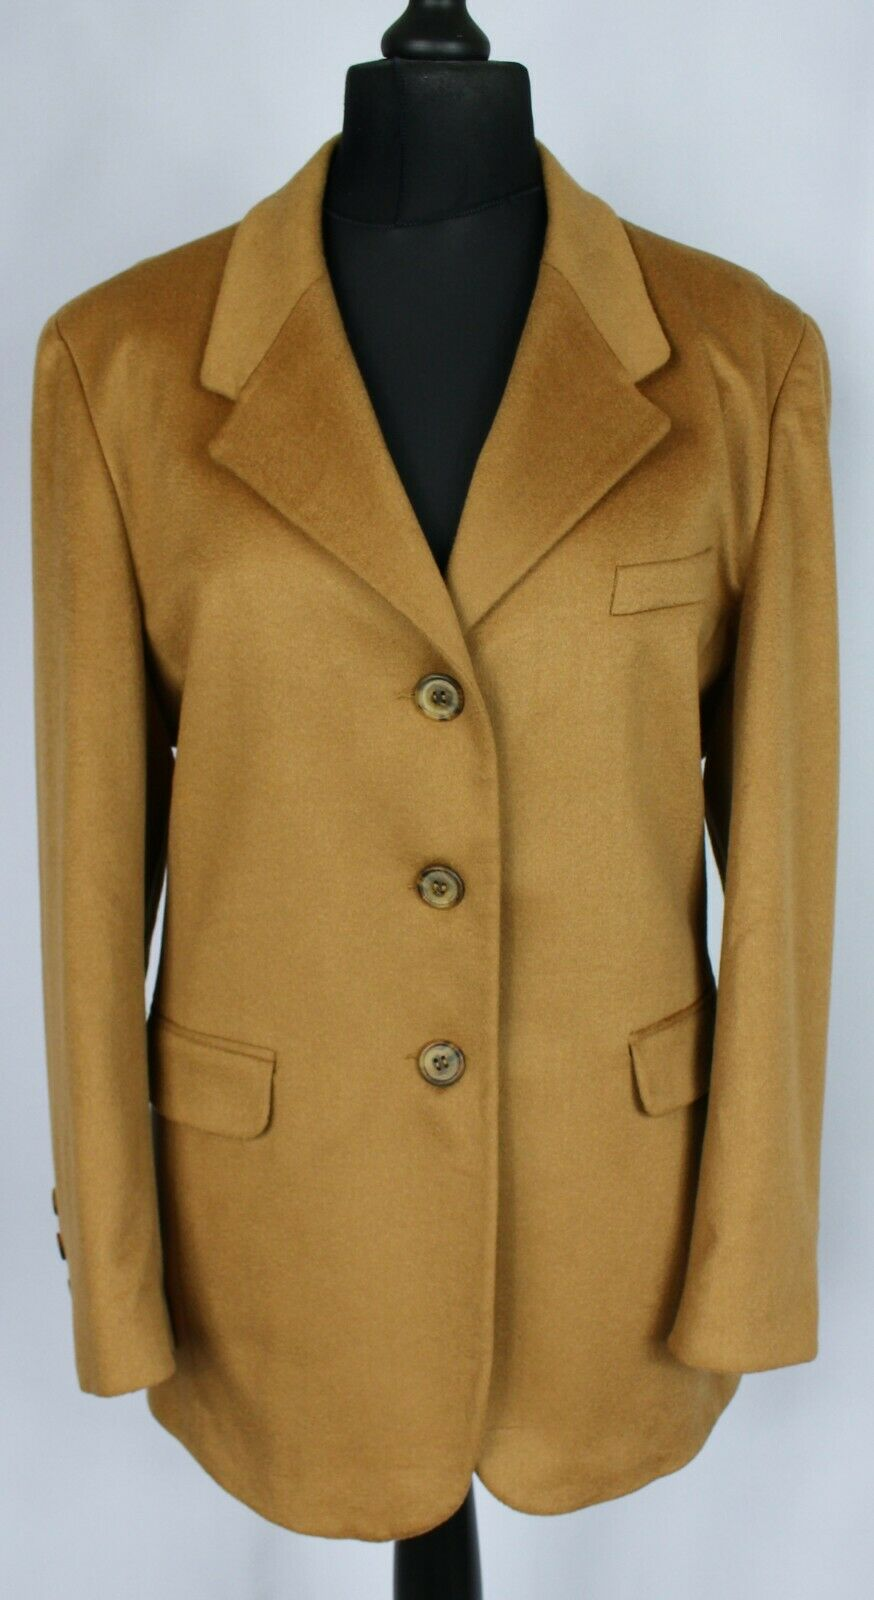 Cashmere Jacket Camel Brown UK 16/EU 44 EXCEPTIONAL QUALITY 3479